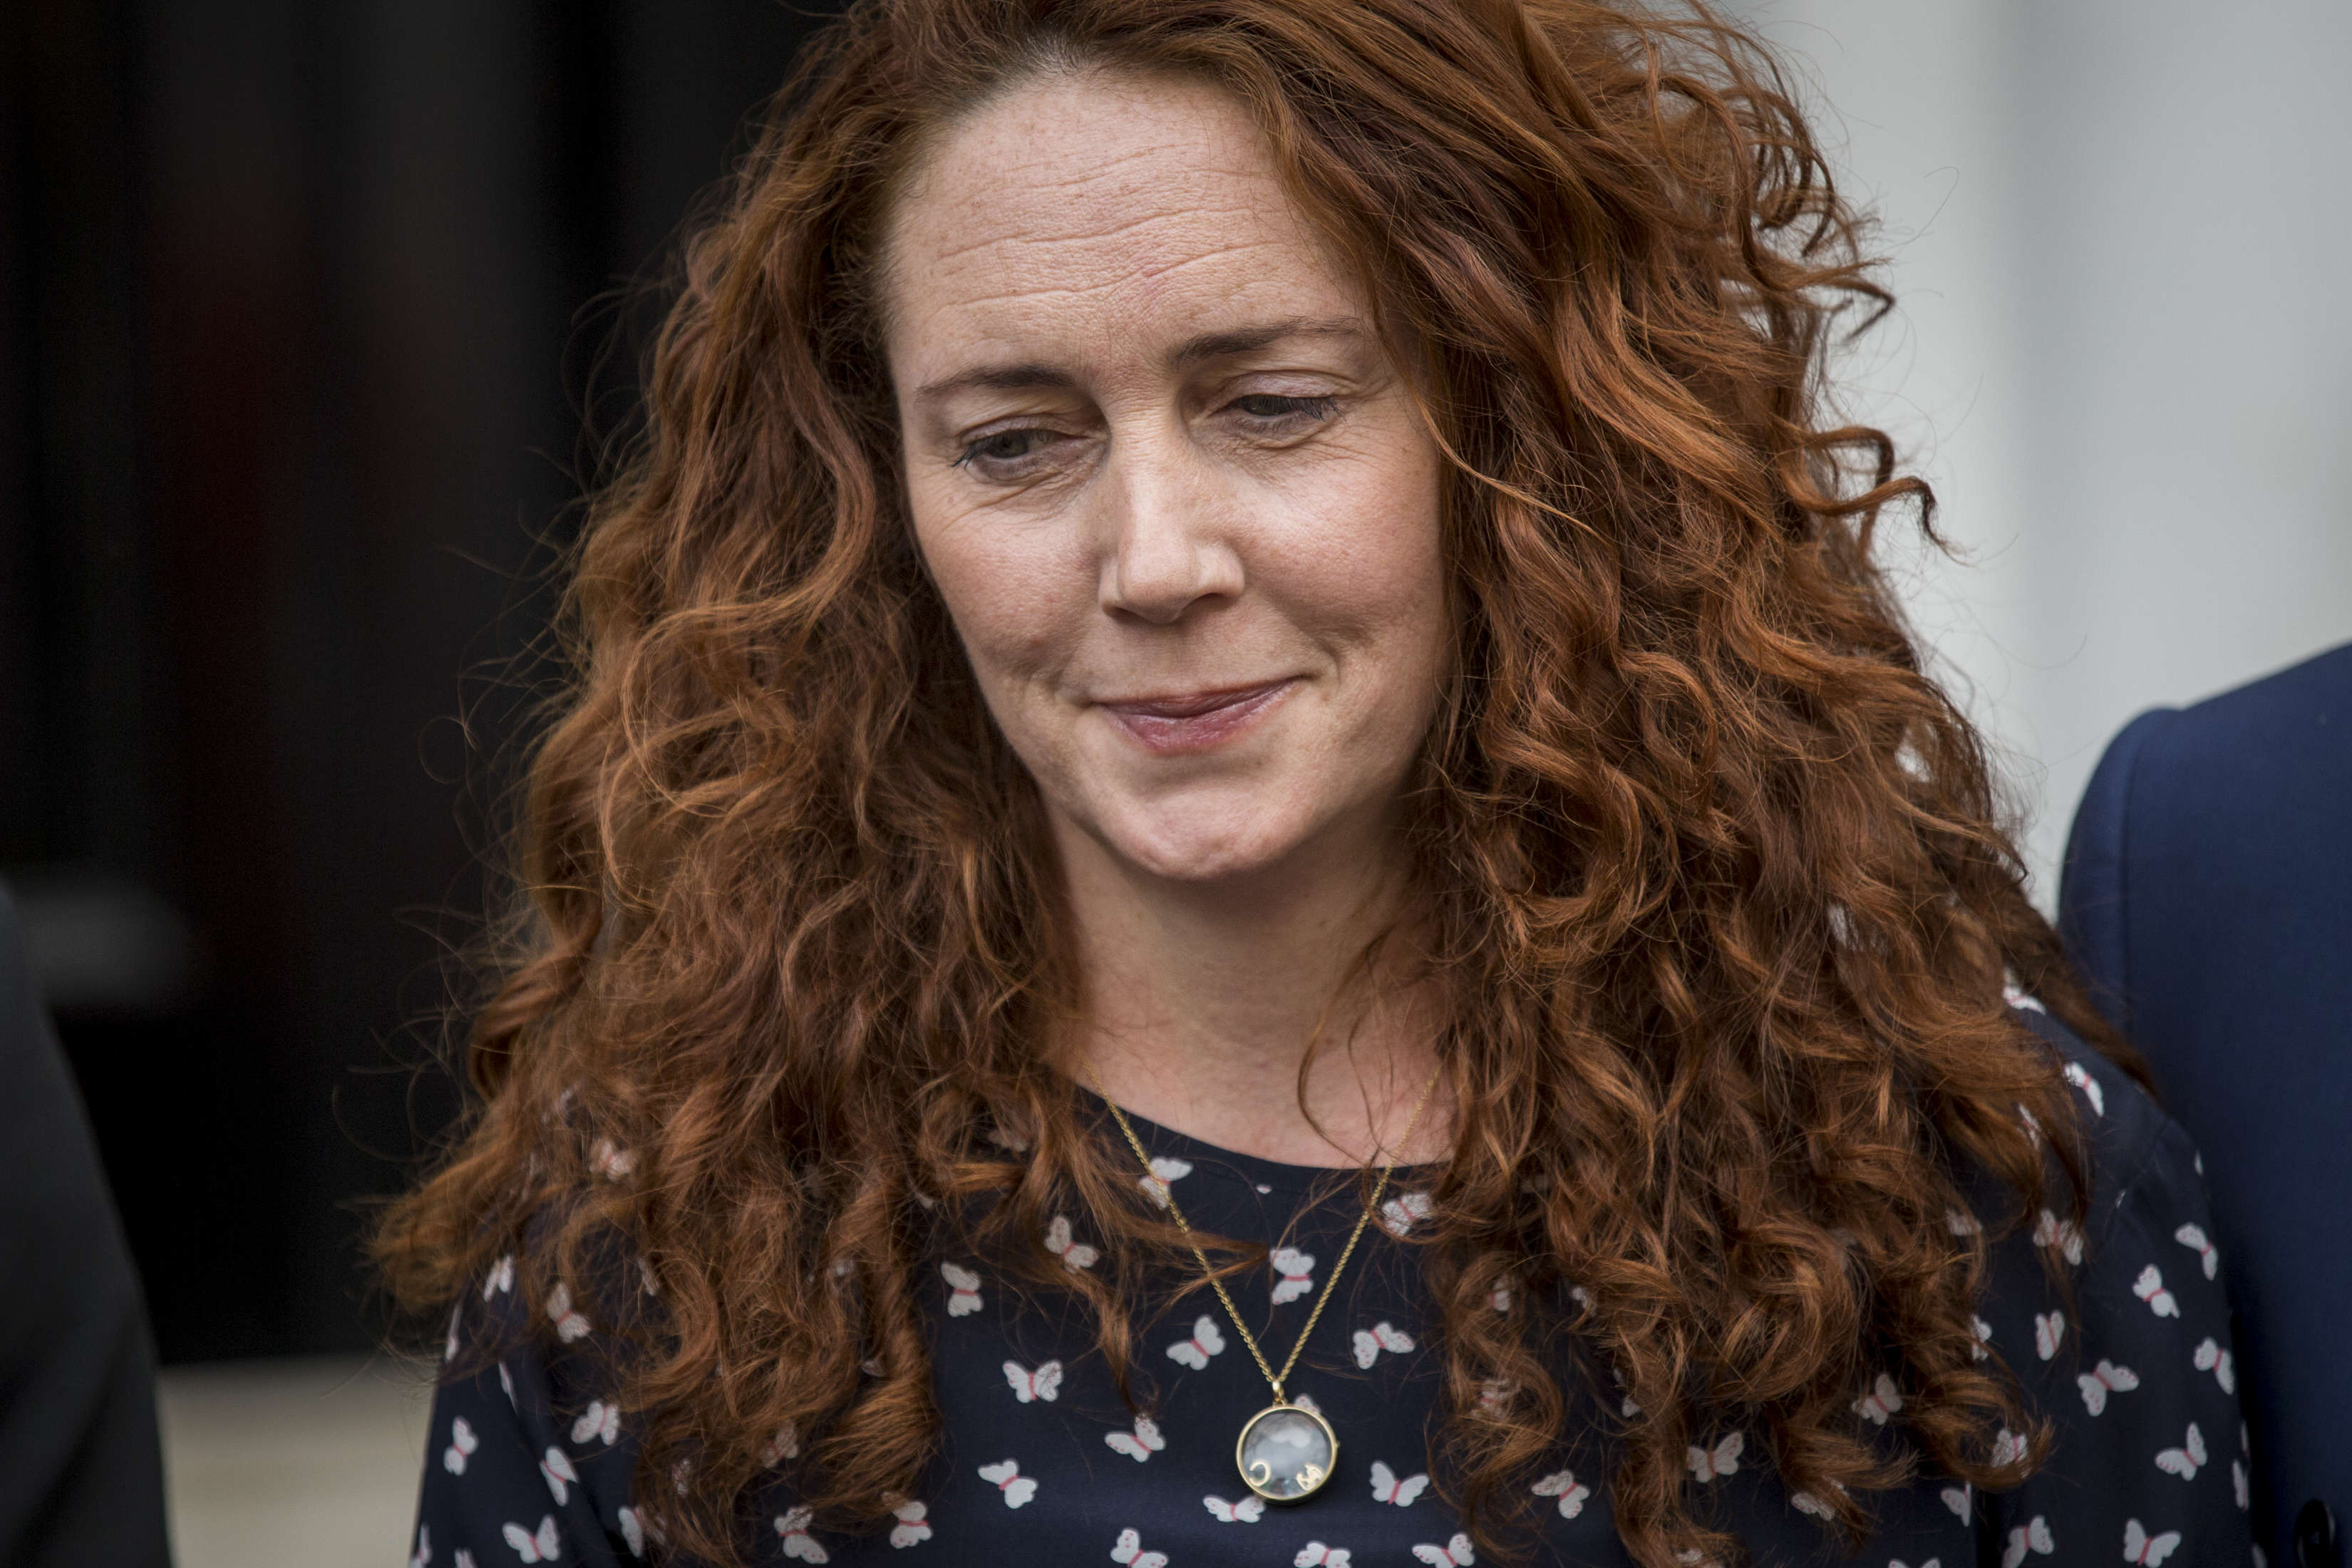 Rebekah And Charles Brooks Make Statement After Being Acquitted Of Phone Hacking